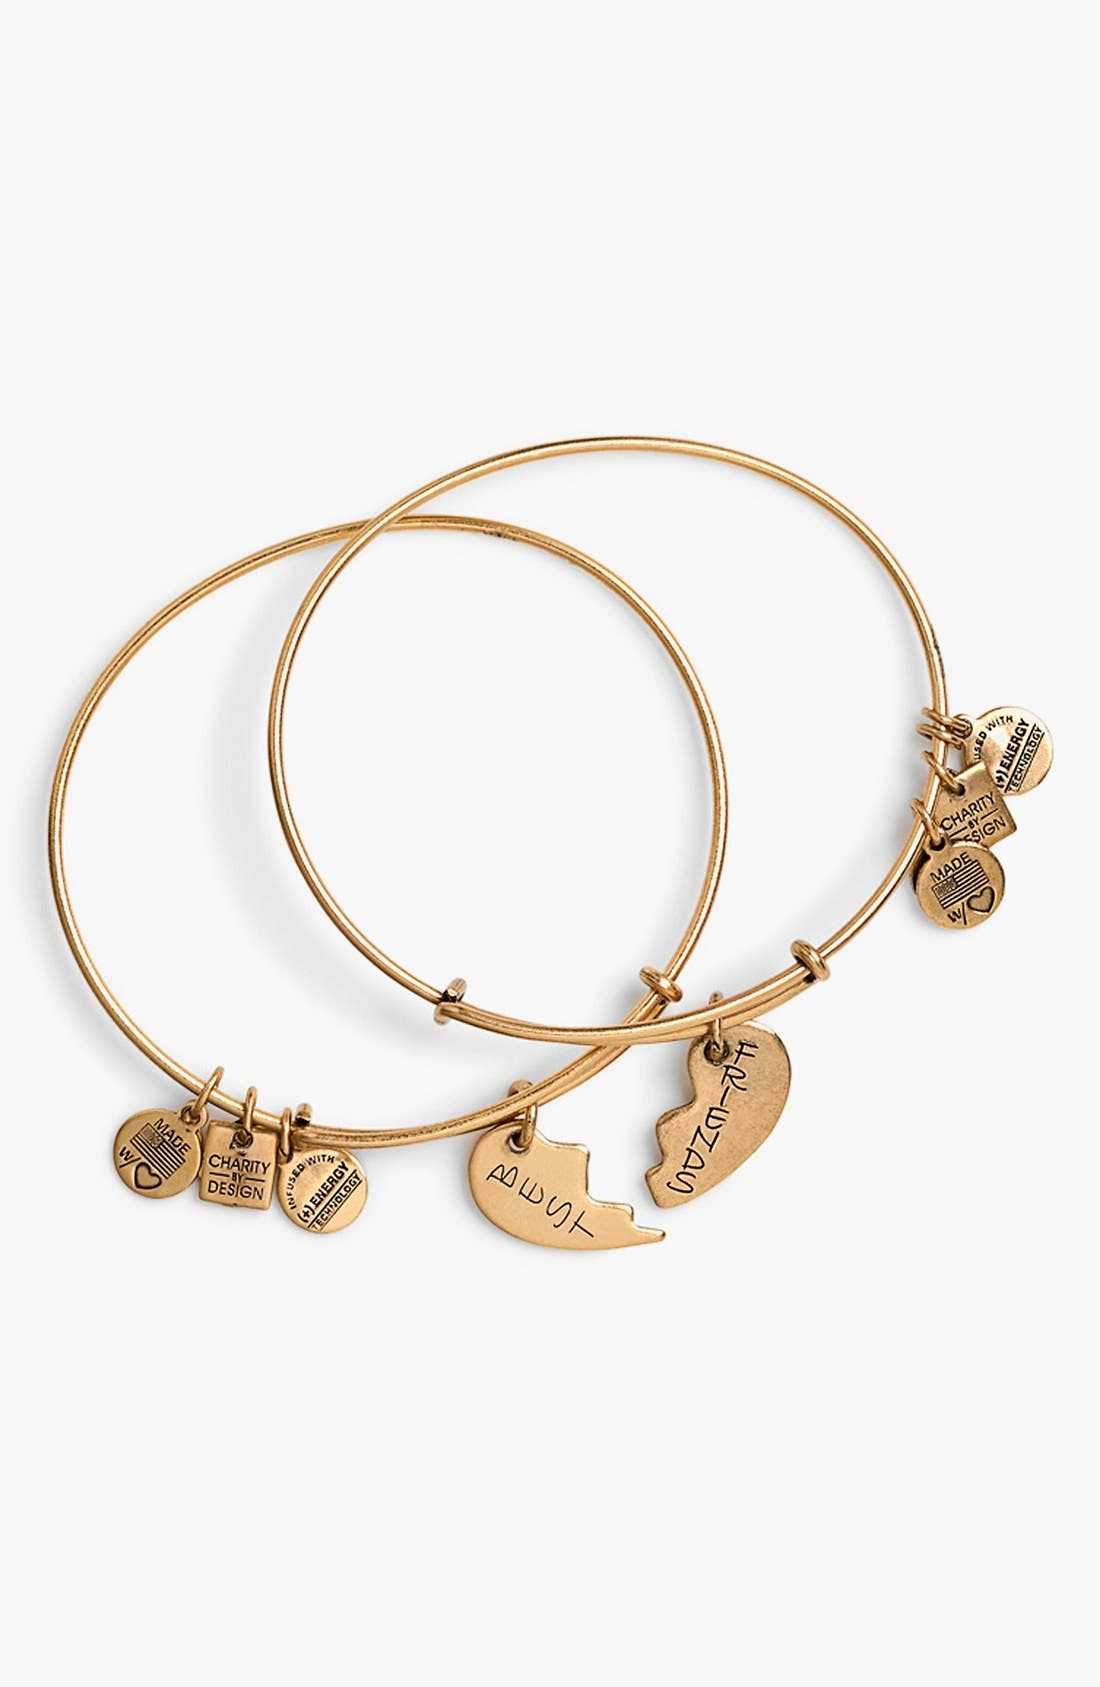 'Charity by Design - Best Friends' Adjustable Wire Bangles,                             Main thumbnail 1, color,                             710